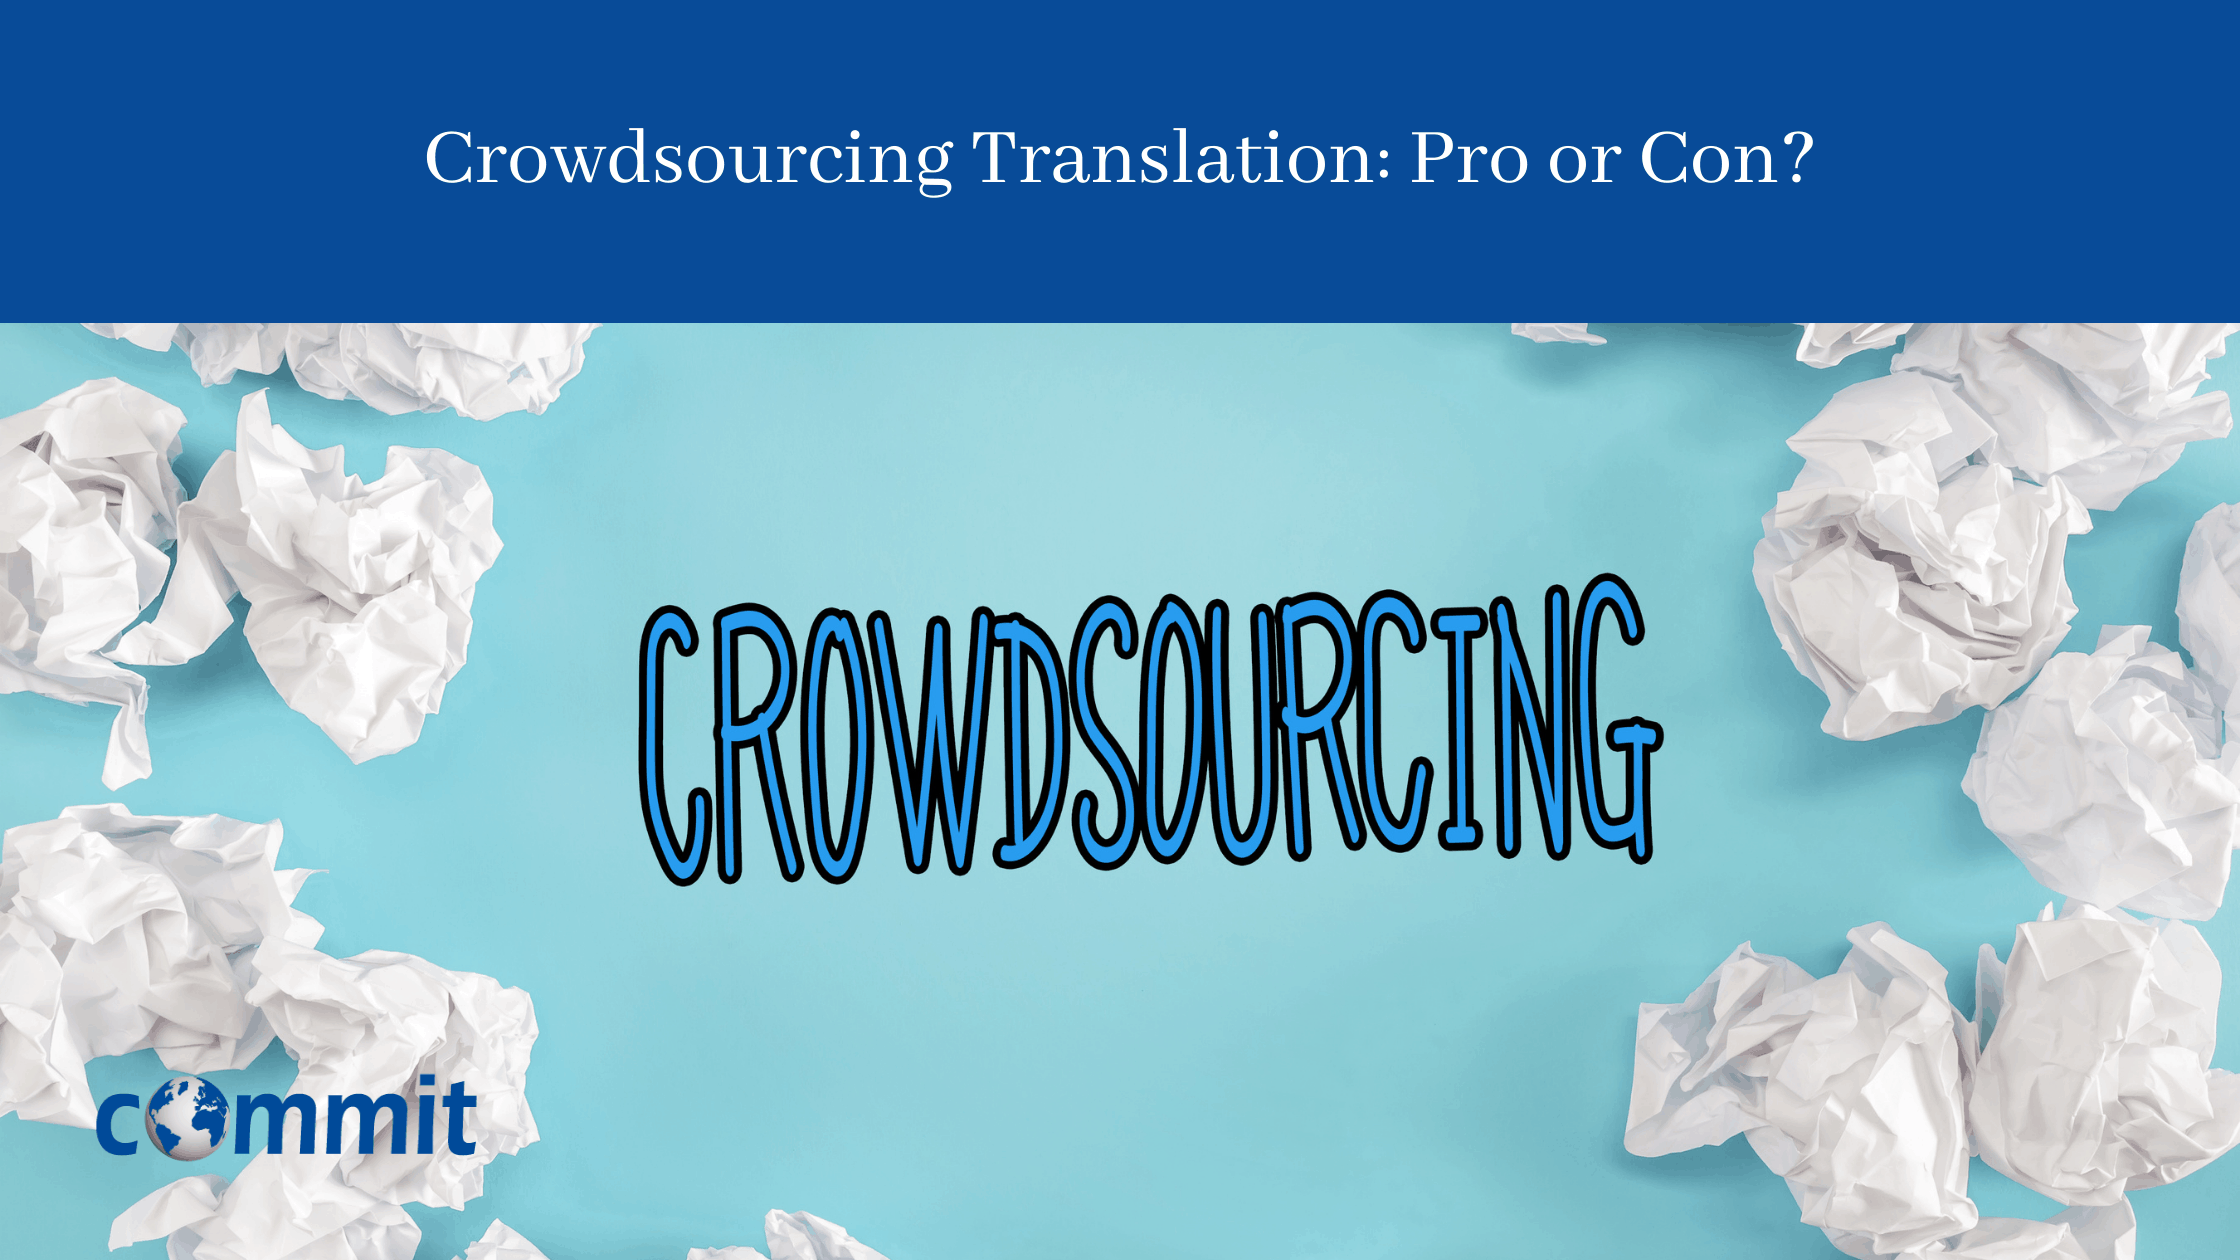 Crowdsourcing Translation: Pro or Con?